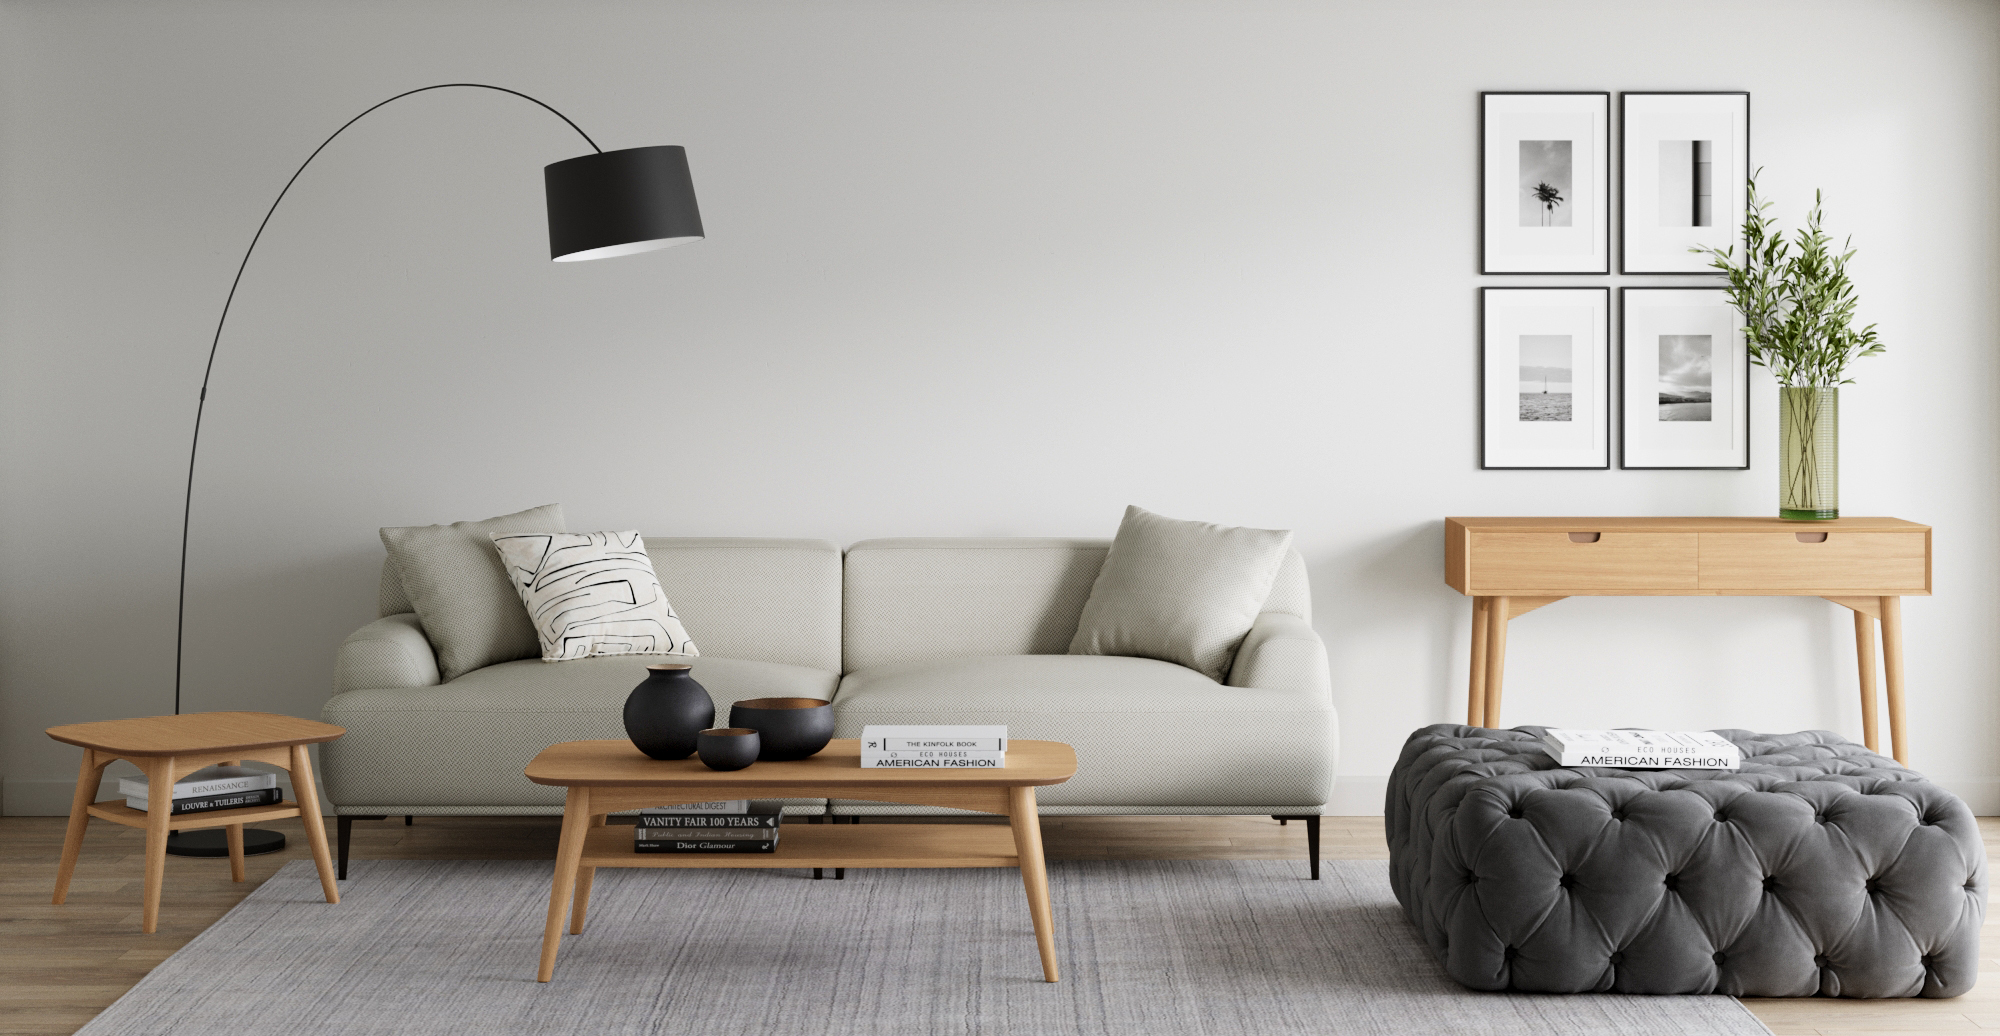 Mia Coffee Table styled in Scandinavian living room